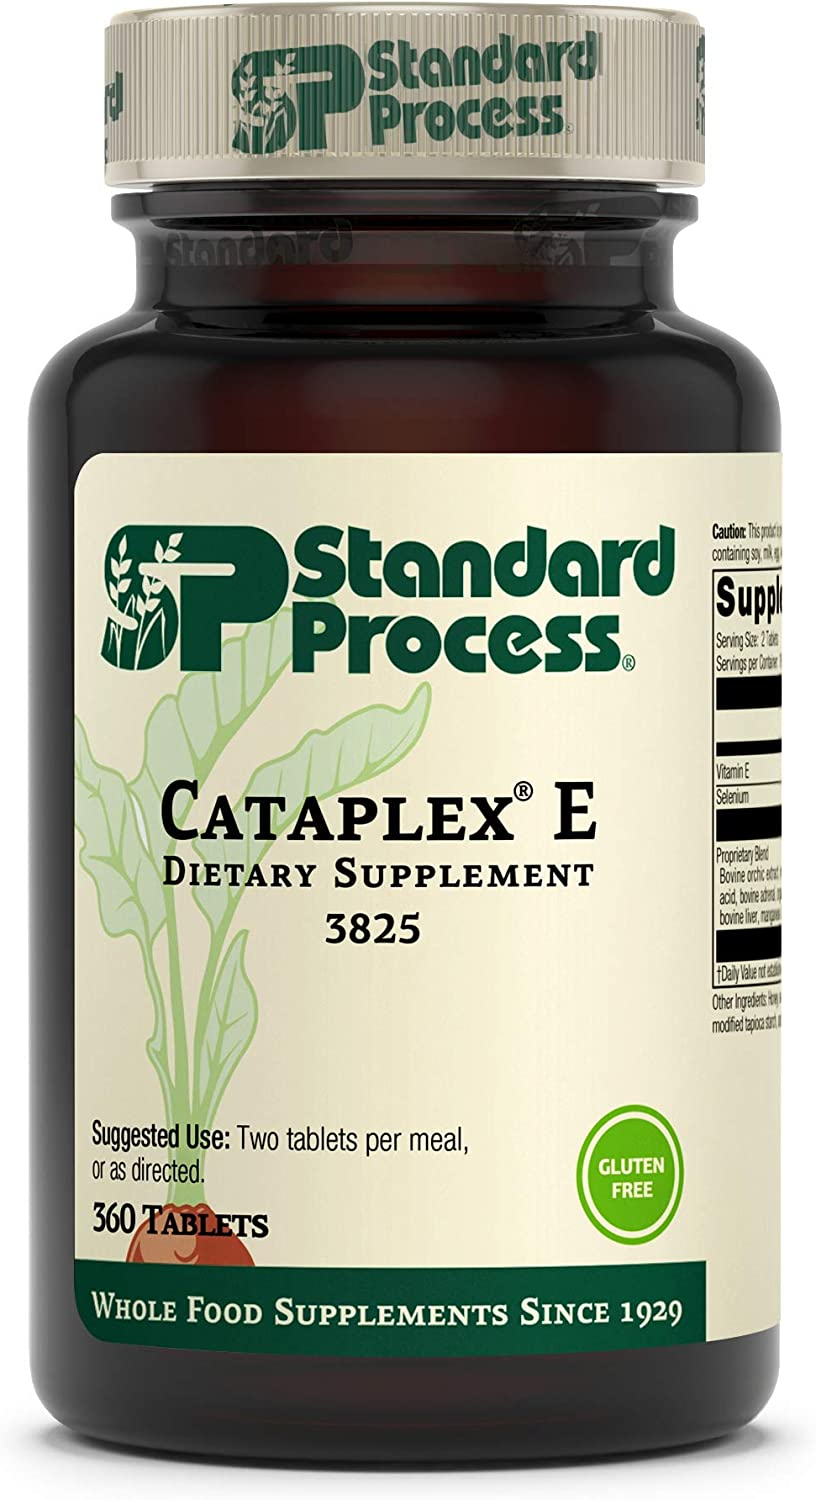 Standard Process Cataplex E - Whole Food RNA Supplement and Antioxidant with D-Alpha Tocopherol Vitamin E, Beet Root, Ascorbic Acid, Inositol, Selenium, and Honey - 360 Tablets: Health & Personal Care